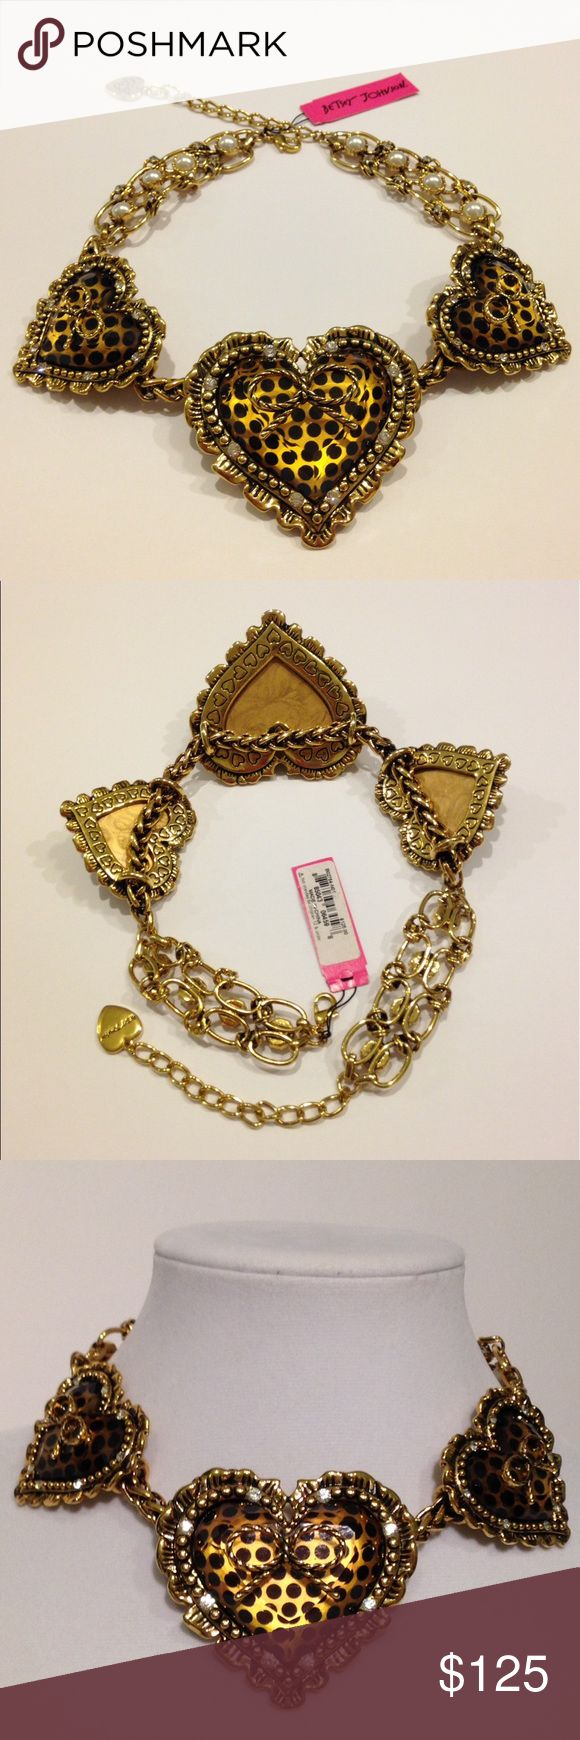 Betsey Johnson Leopard Polka Dot Heart Necklace 100% Authentic vintage retired Betsey Johnson gold and black polka for heart necklace. (It reminds some people of leopard print, but it is polka dots). Lucite hearts with gold bows on front, and gold and black polka dotted background. The hearts are surrounded by a gold embellished ruffle frame, along with crystals. There are not crystals or pieces missing. No tarnishing. Comes with original plastic manufacturer bag. Substantial piece. Has some…